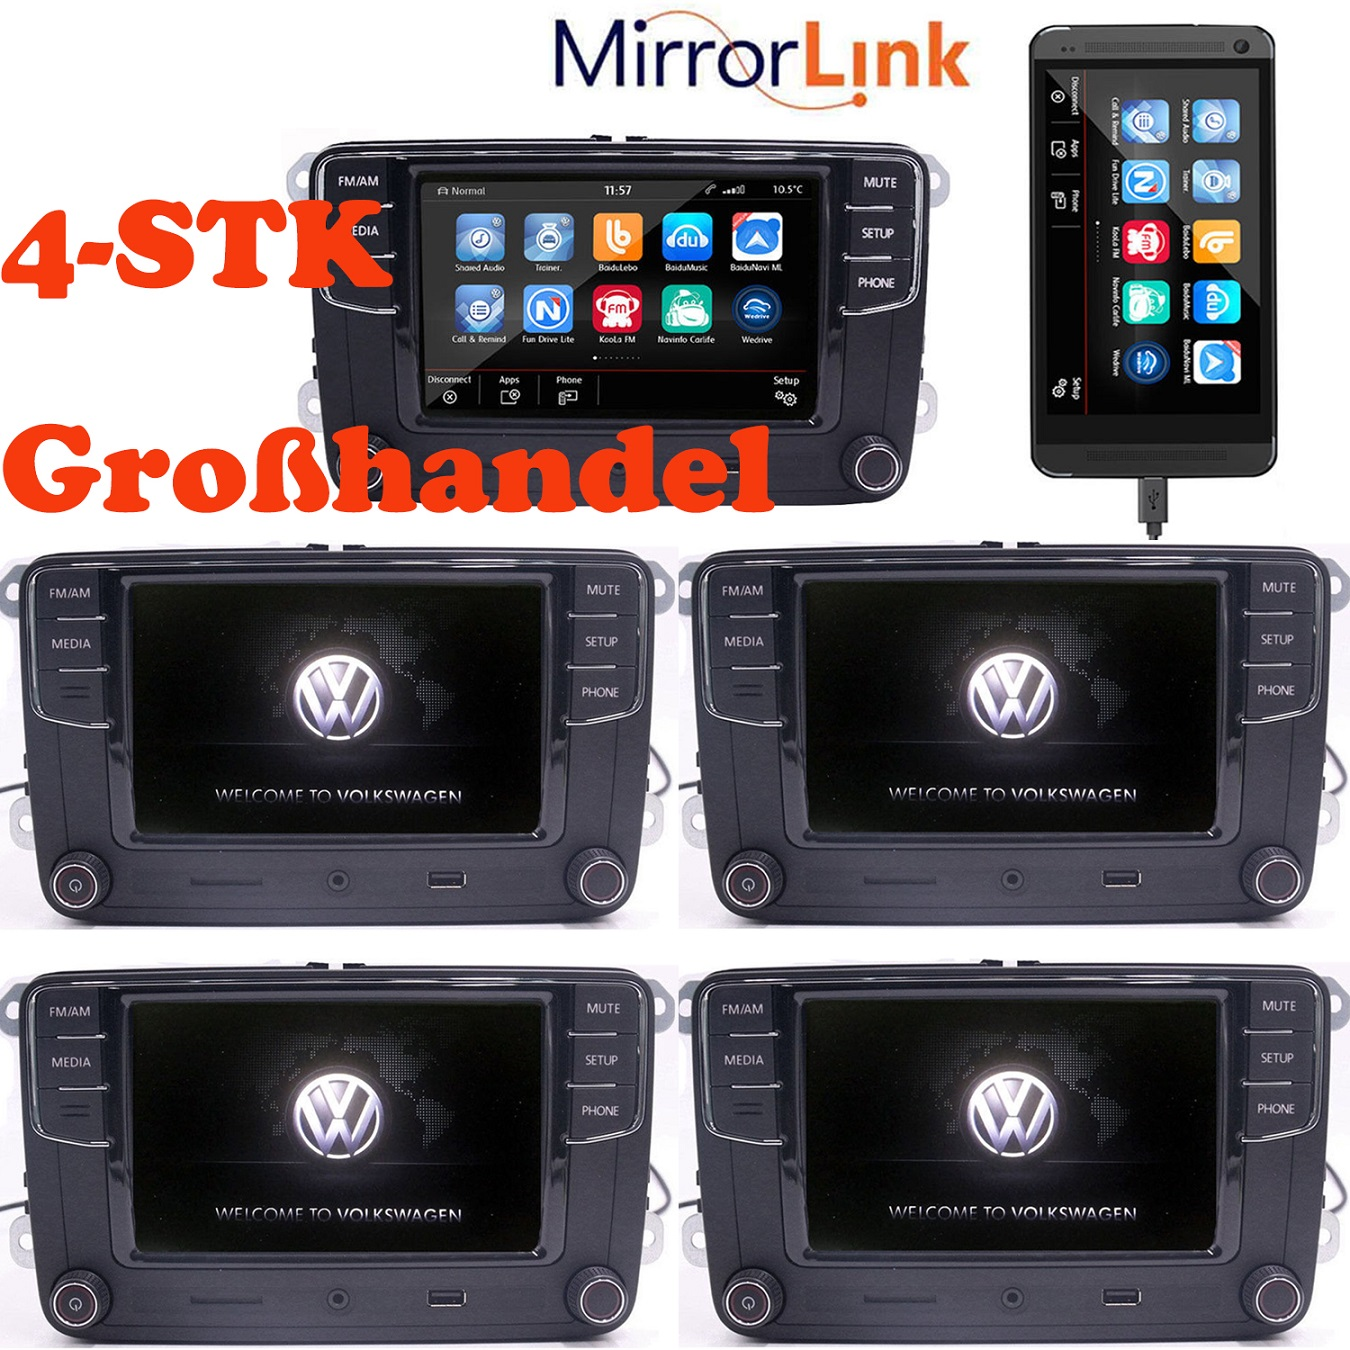 4stk gro handel 6 5 autoradio vw rcd510 rcd330 mirrorlink. Black Bedroom Furniture Sets. Home Design Ideas